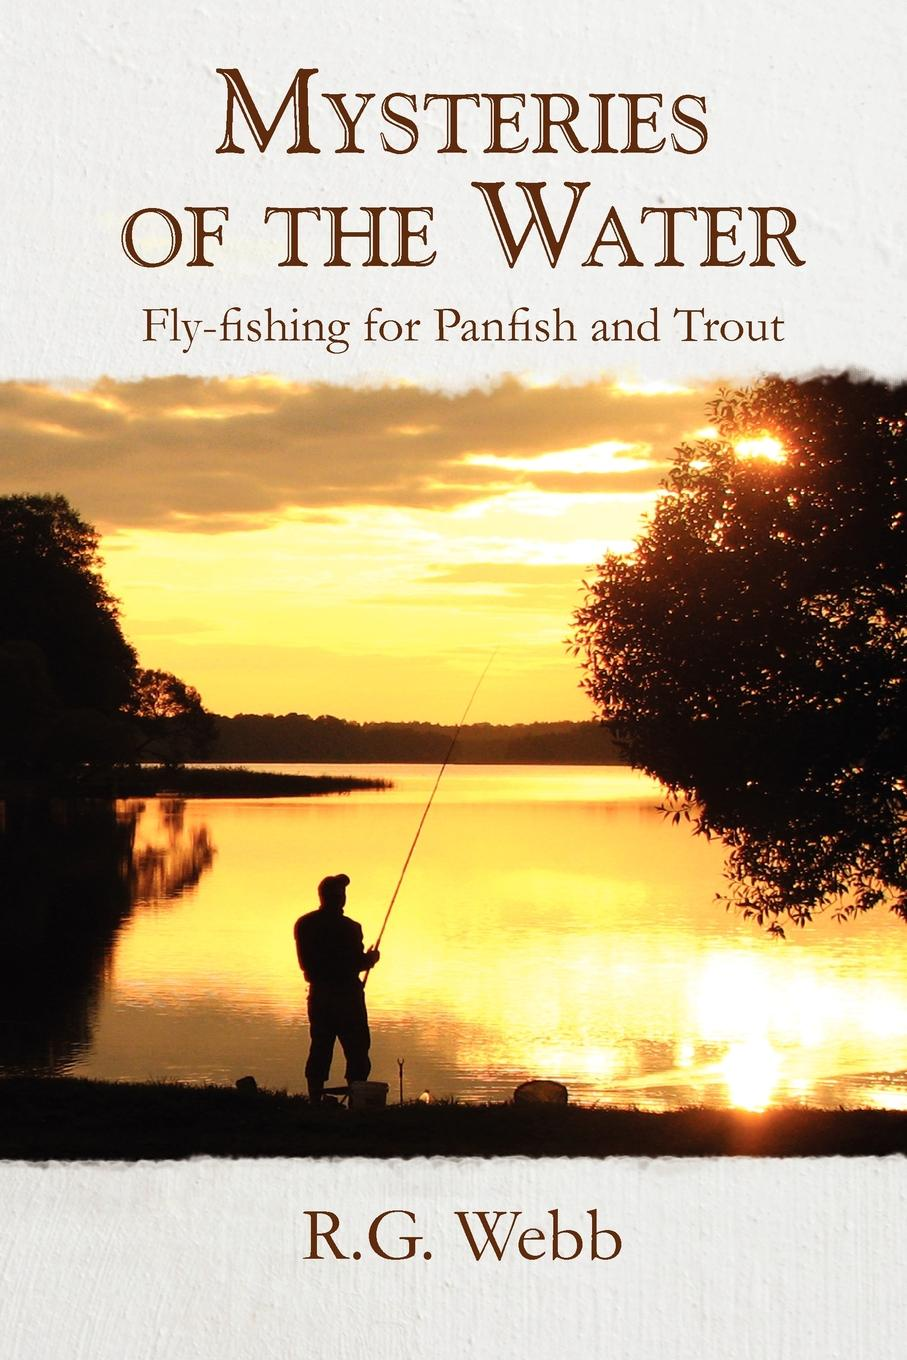 Фото - R. G. Webb Mysteries of the Water. Fly-Fishing for Panfish and Trout набор нахлыстовый guideline kispiox trout fly fishing kit